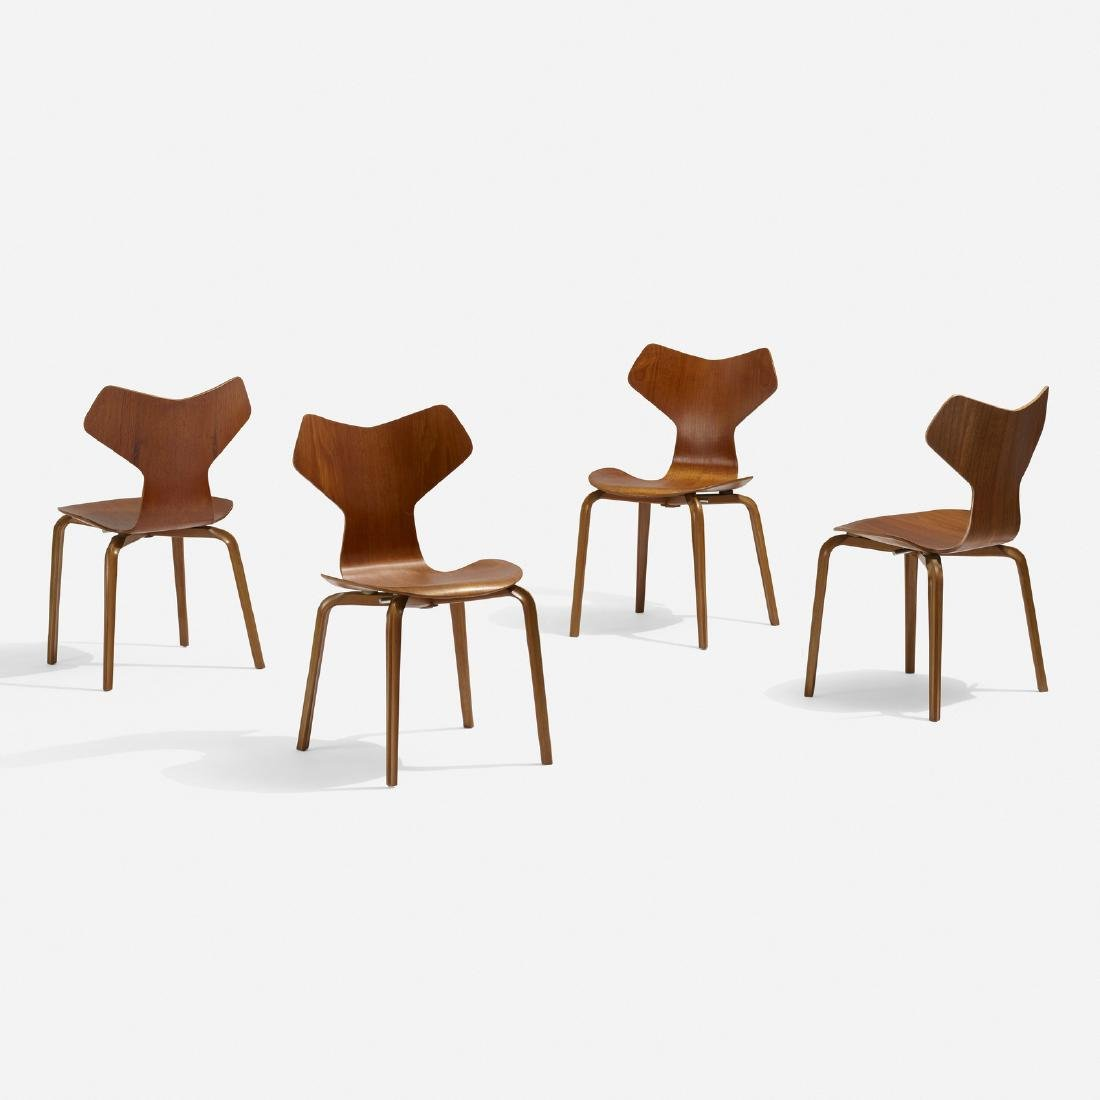 Arne Jacobsen, Grand Prix dining chairs, set of four